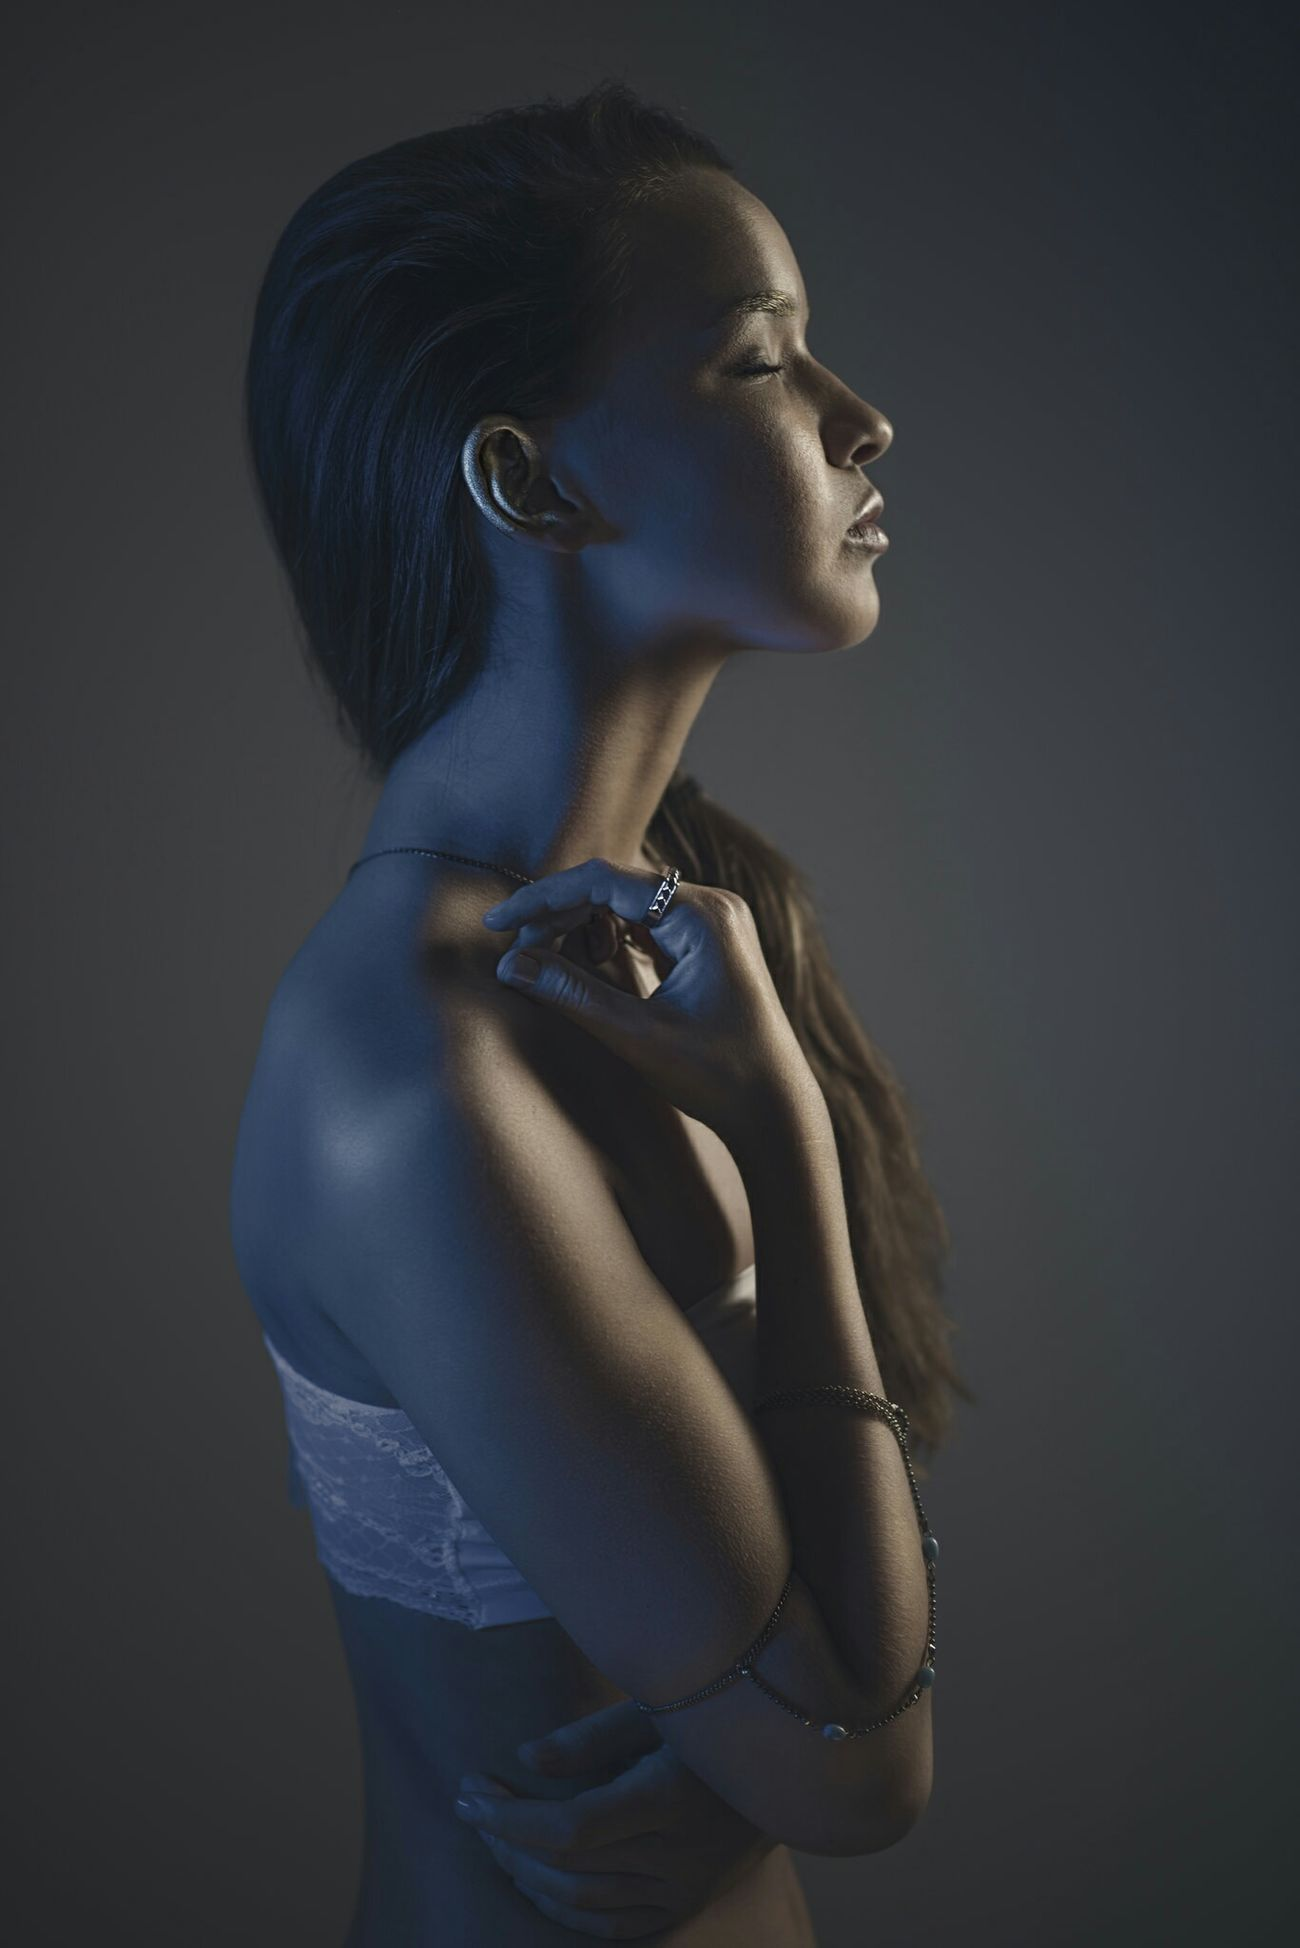 Trina in the studio. Created using both constant and strobe lights. Check This Out Strobes Model